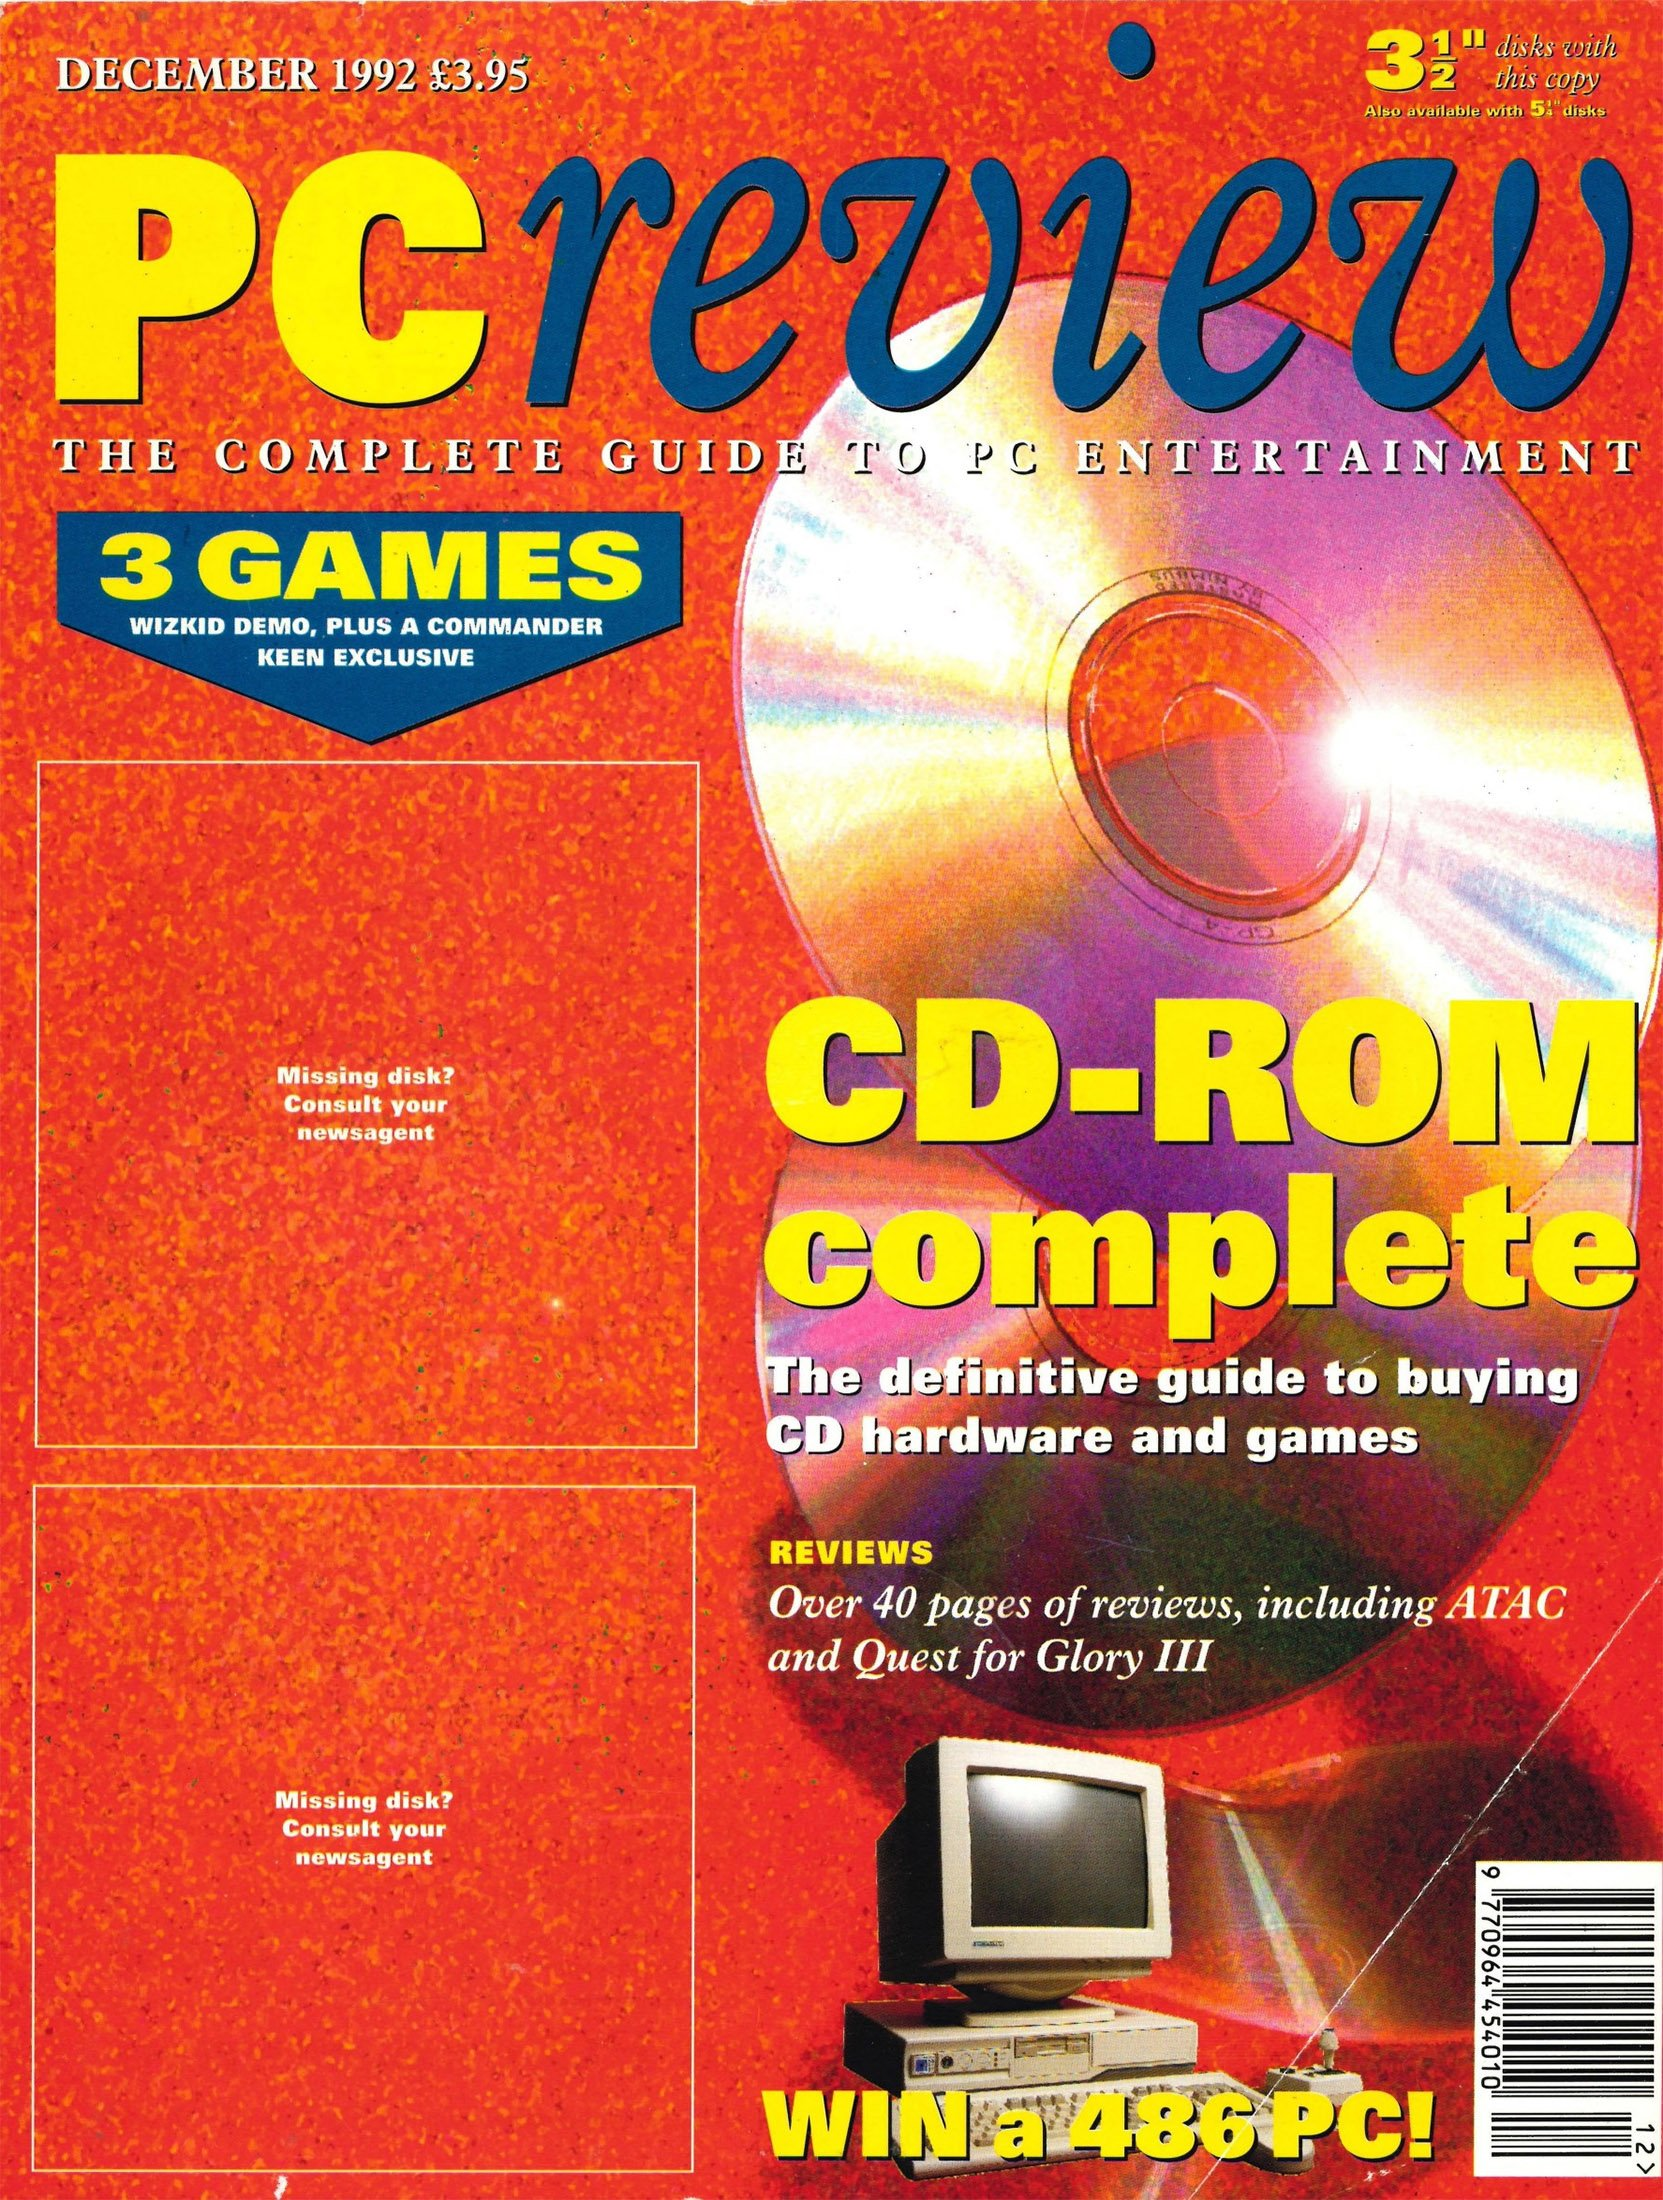 PC Review Issue 14 (December 1992)